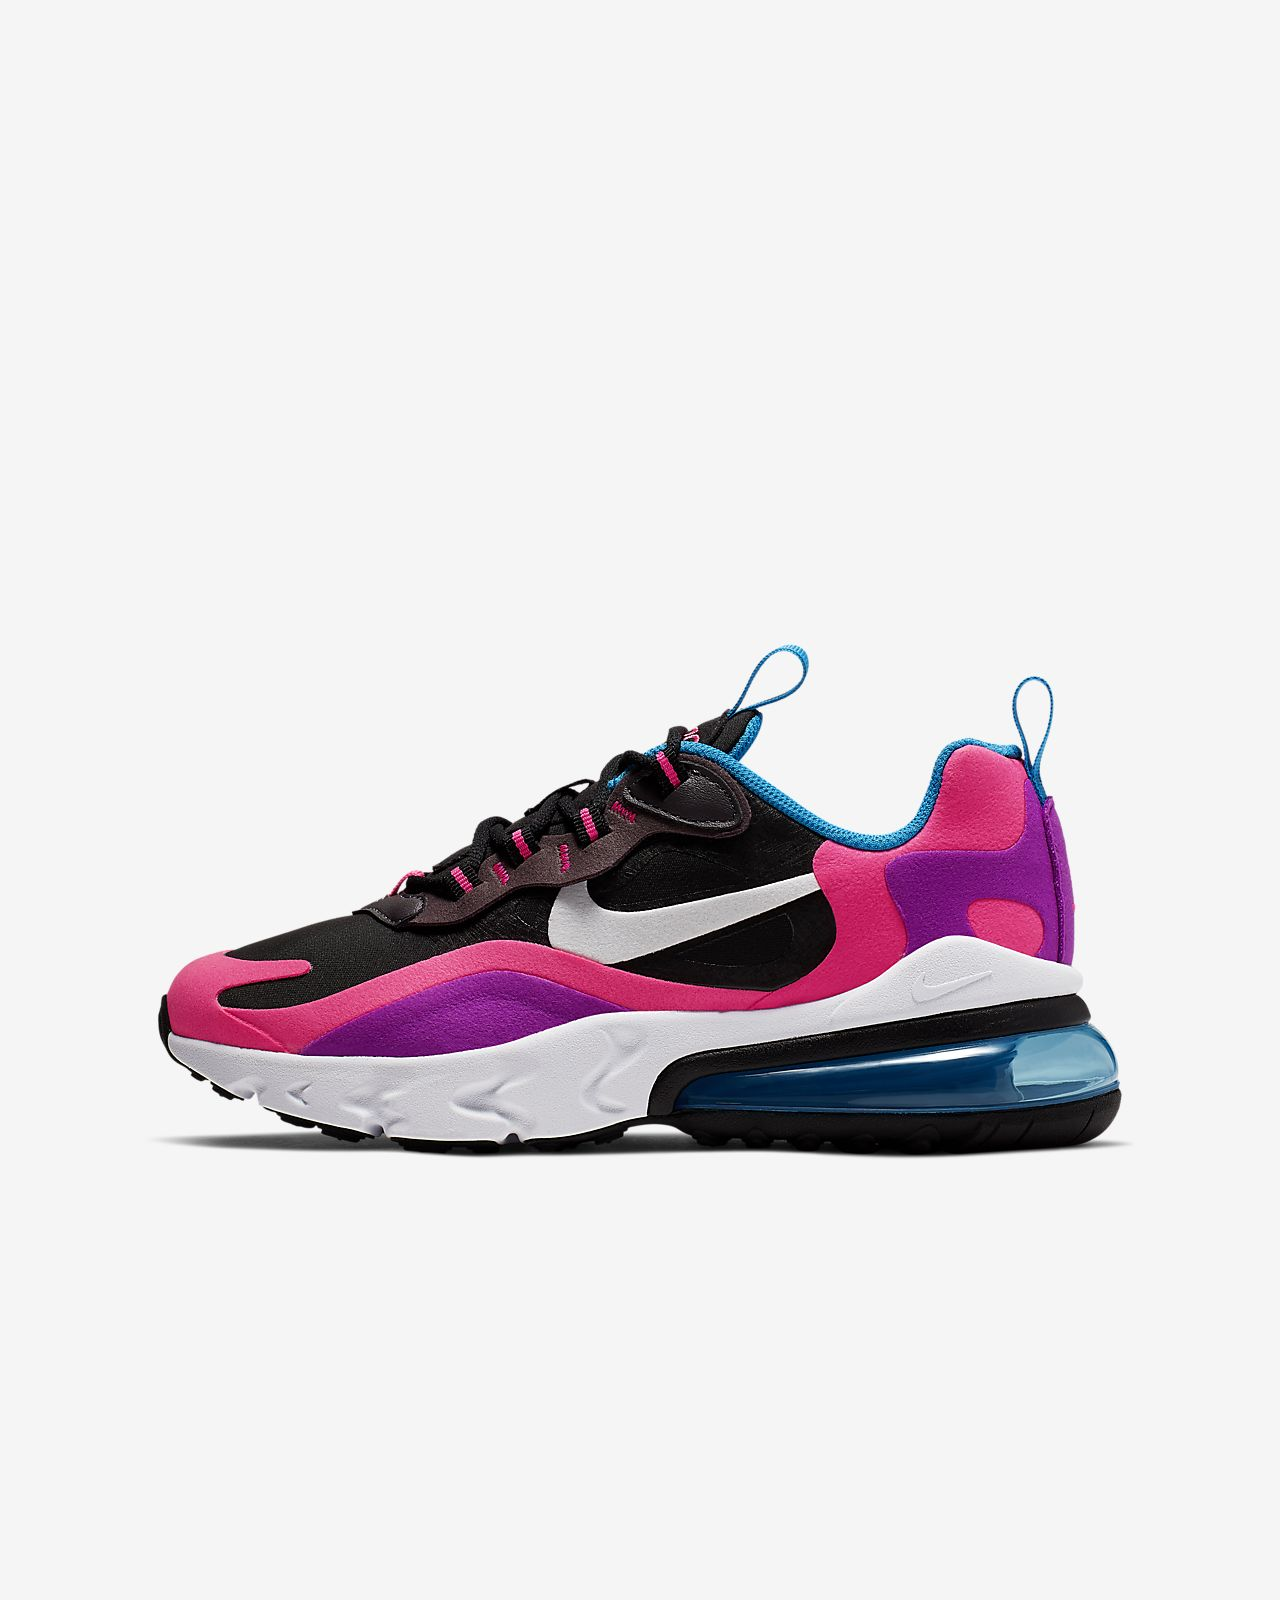 Nike Air Max 270 React Older Kids Shoe